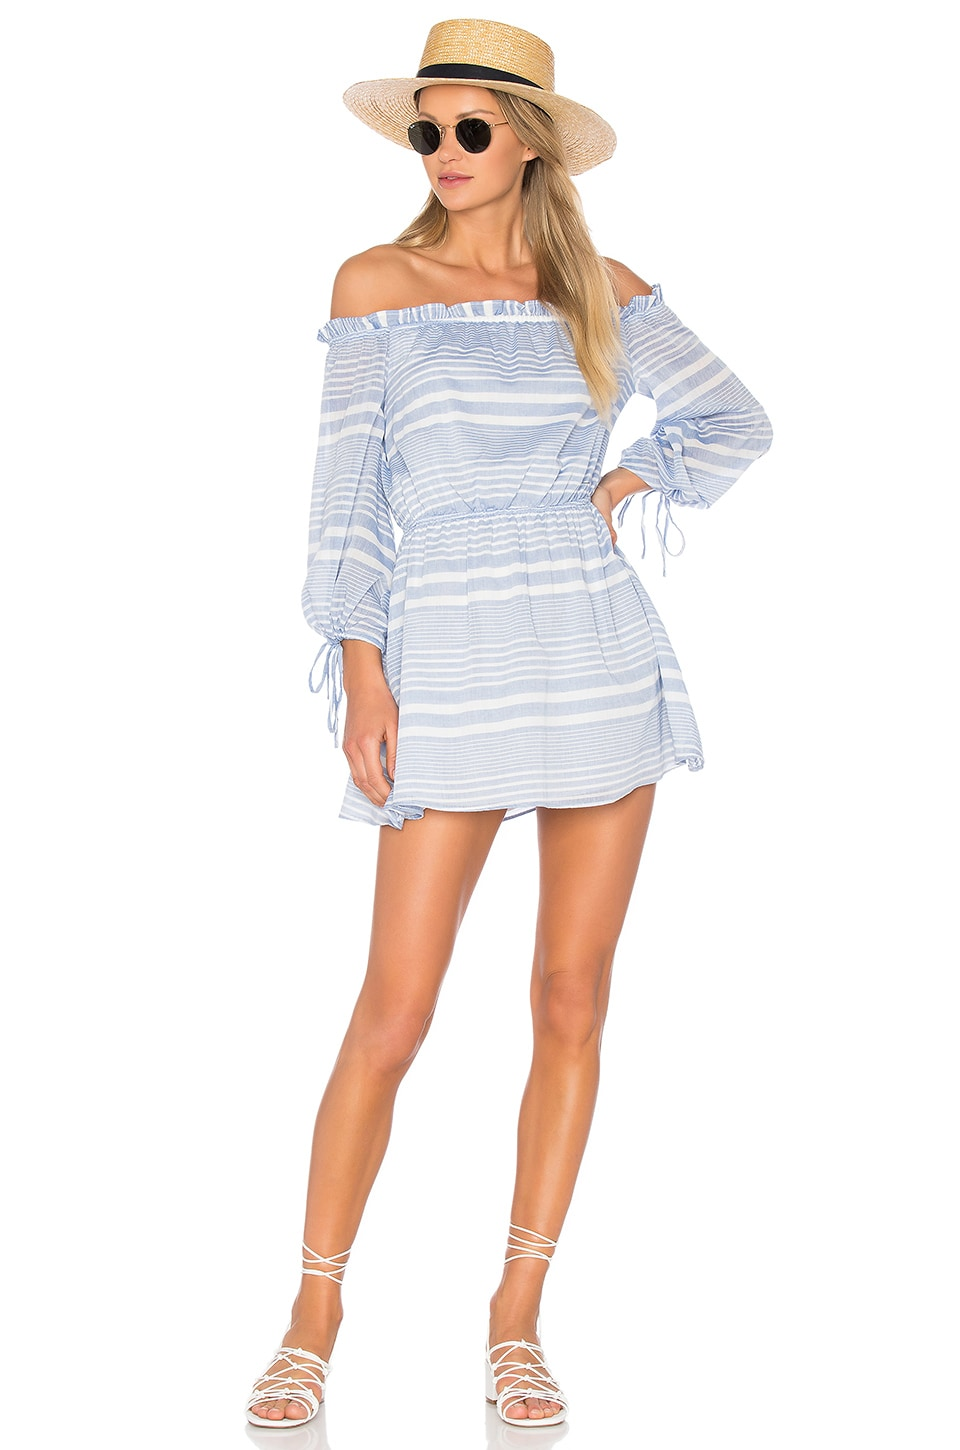 Lovers + Friends Get Lost Dress in Blueberry Stripe